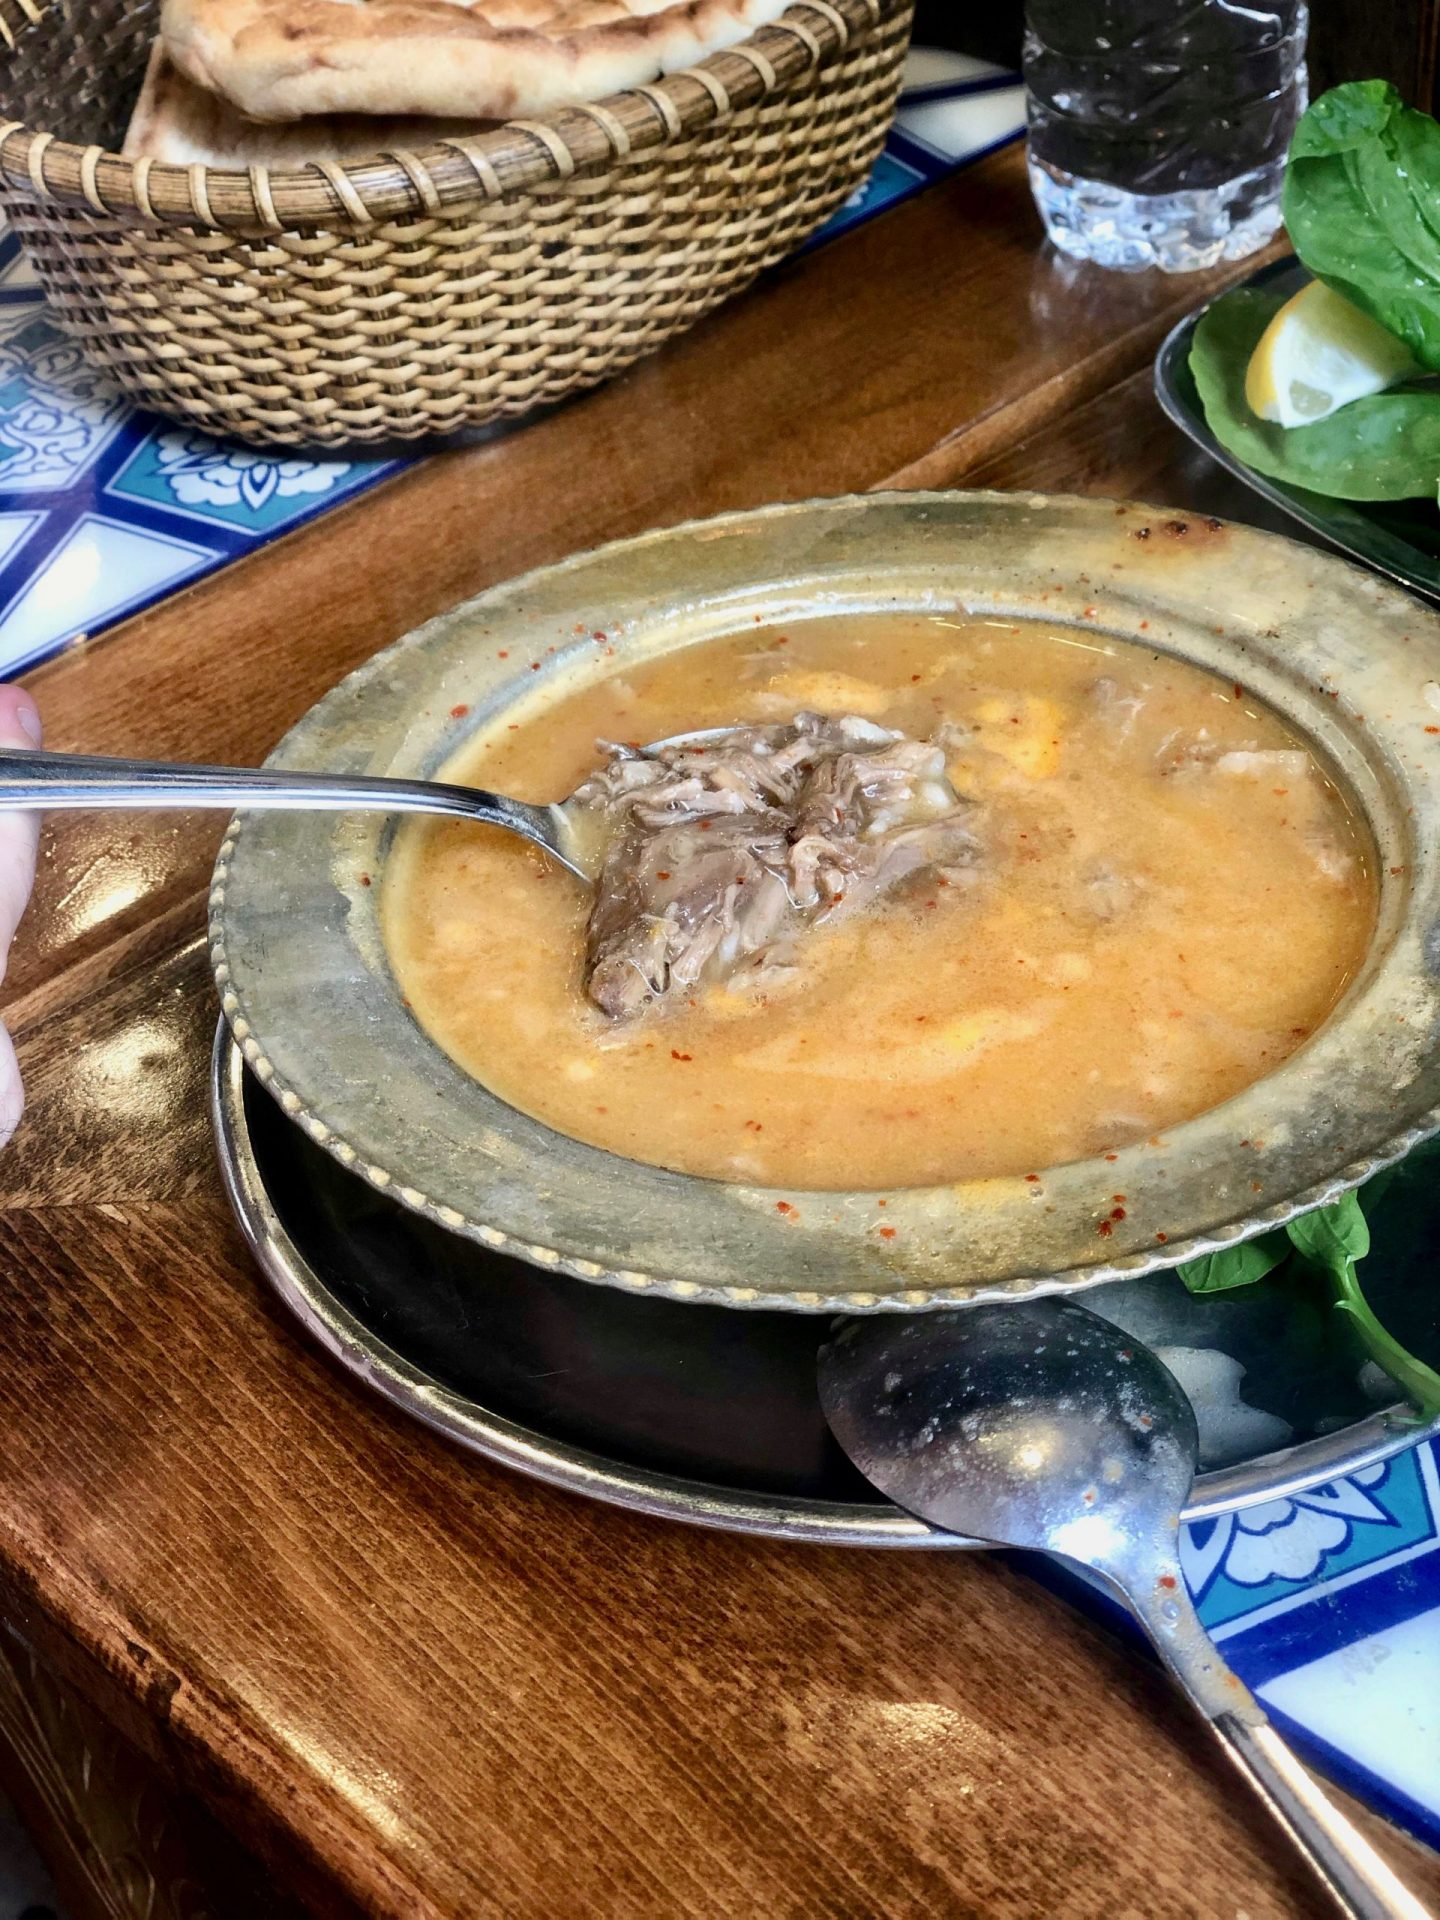 Beyran çorbasi - lamb soup. The soup is an orange colour and a spoon is holding up a chunk of lamb.